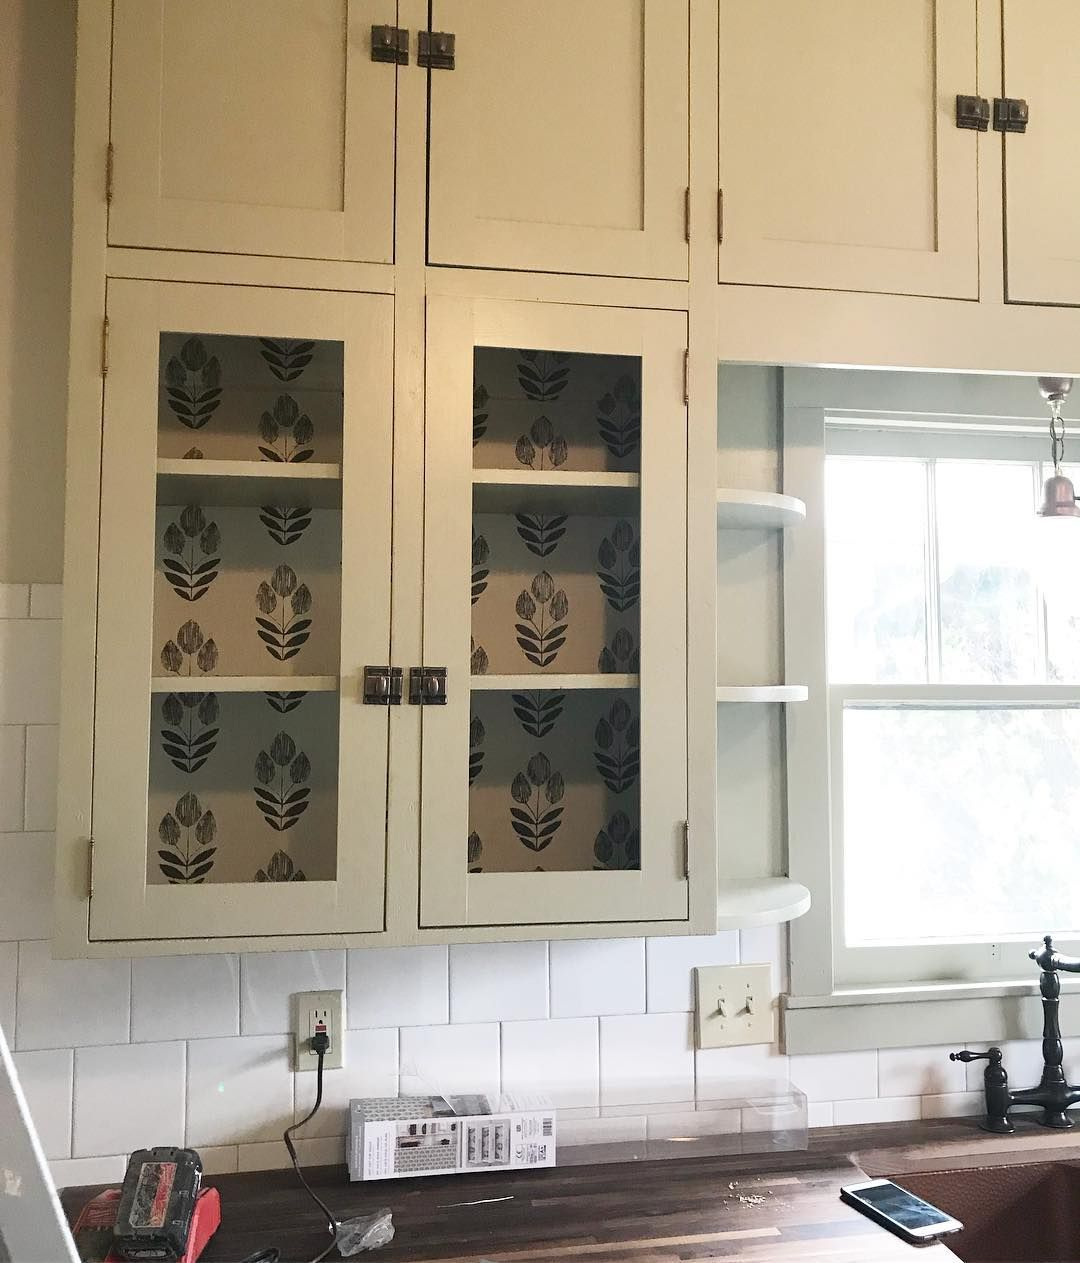 Removable Wallpaper As Kitchen Cabinet Lining Wallpaper Cabinets Removable Wallpaper Painting Cabinets